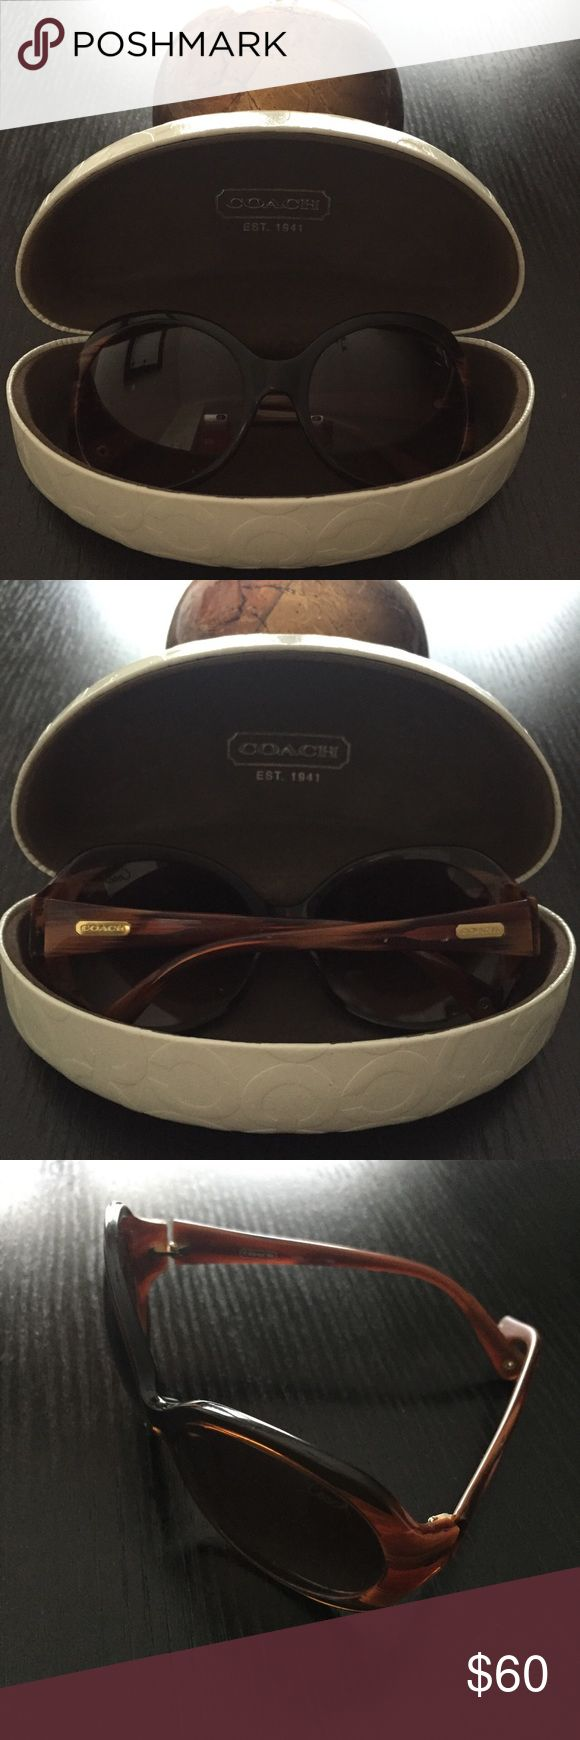 Coach Sunglasses Authentic, gently worn Coach sunglasses - comes with Coach eyeglass case. Open to offers made using the offer button option. Coach Accessories Sunglasses